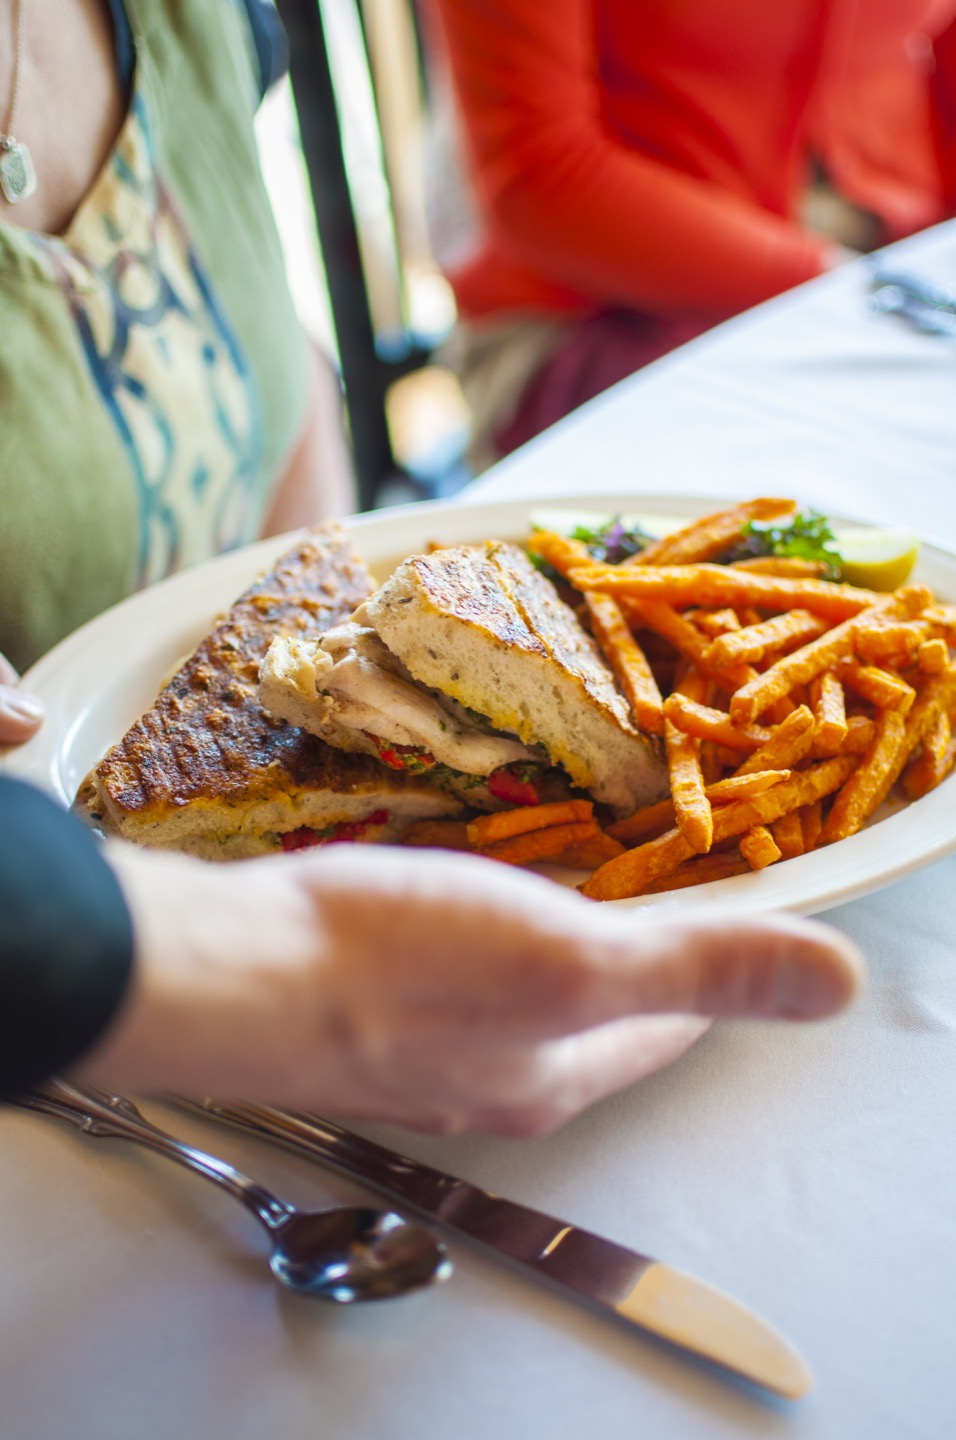 Panini plate served with fries